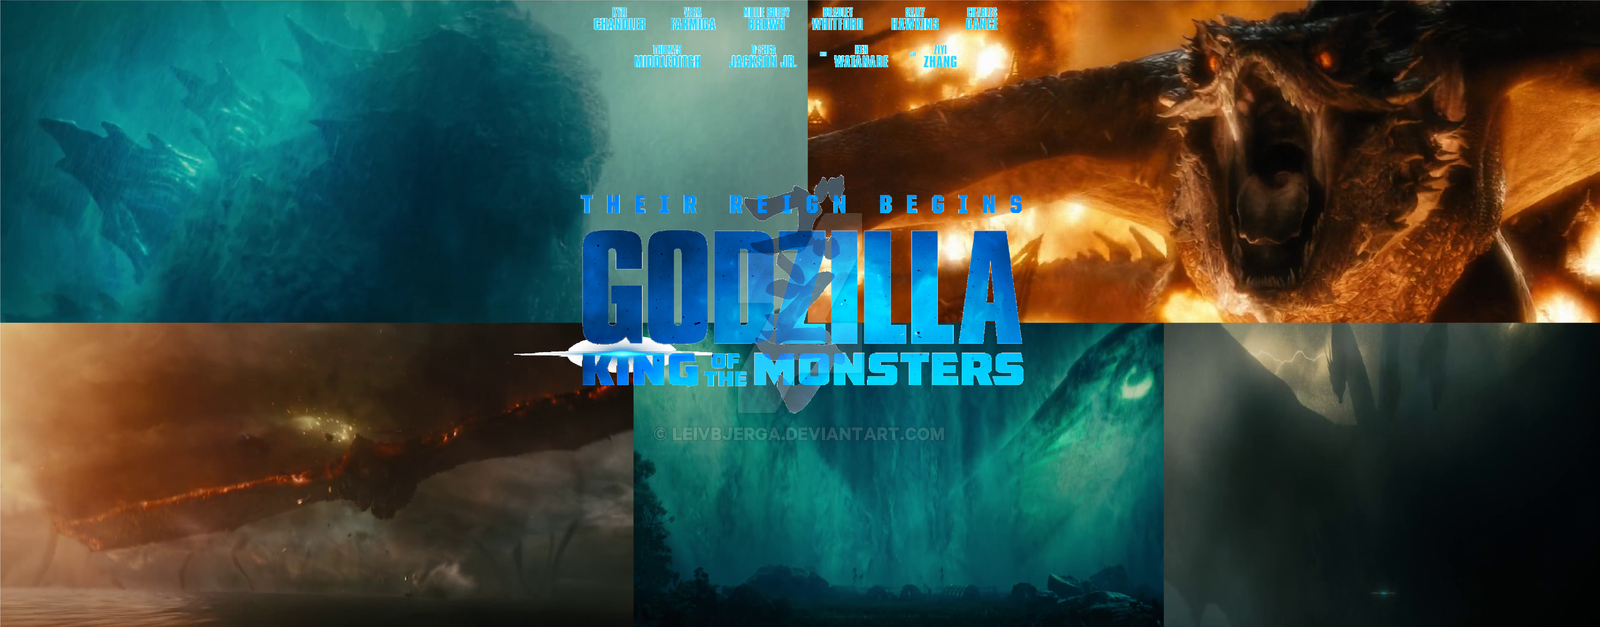 Movie Poster 2019: Godzilla King Of The Monsters 2019 Poster By Leivbjerga On